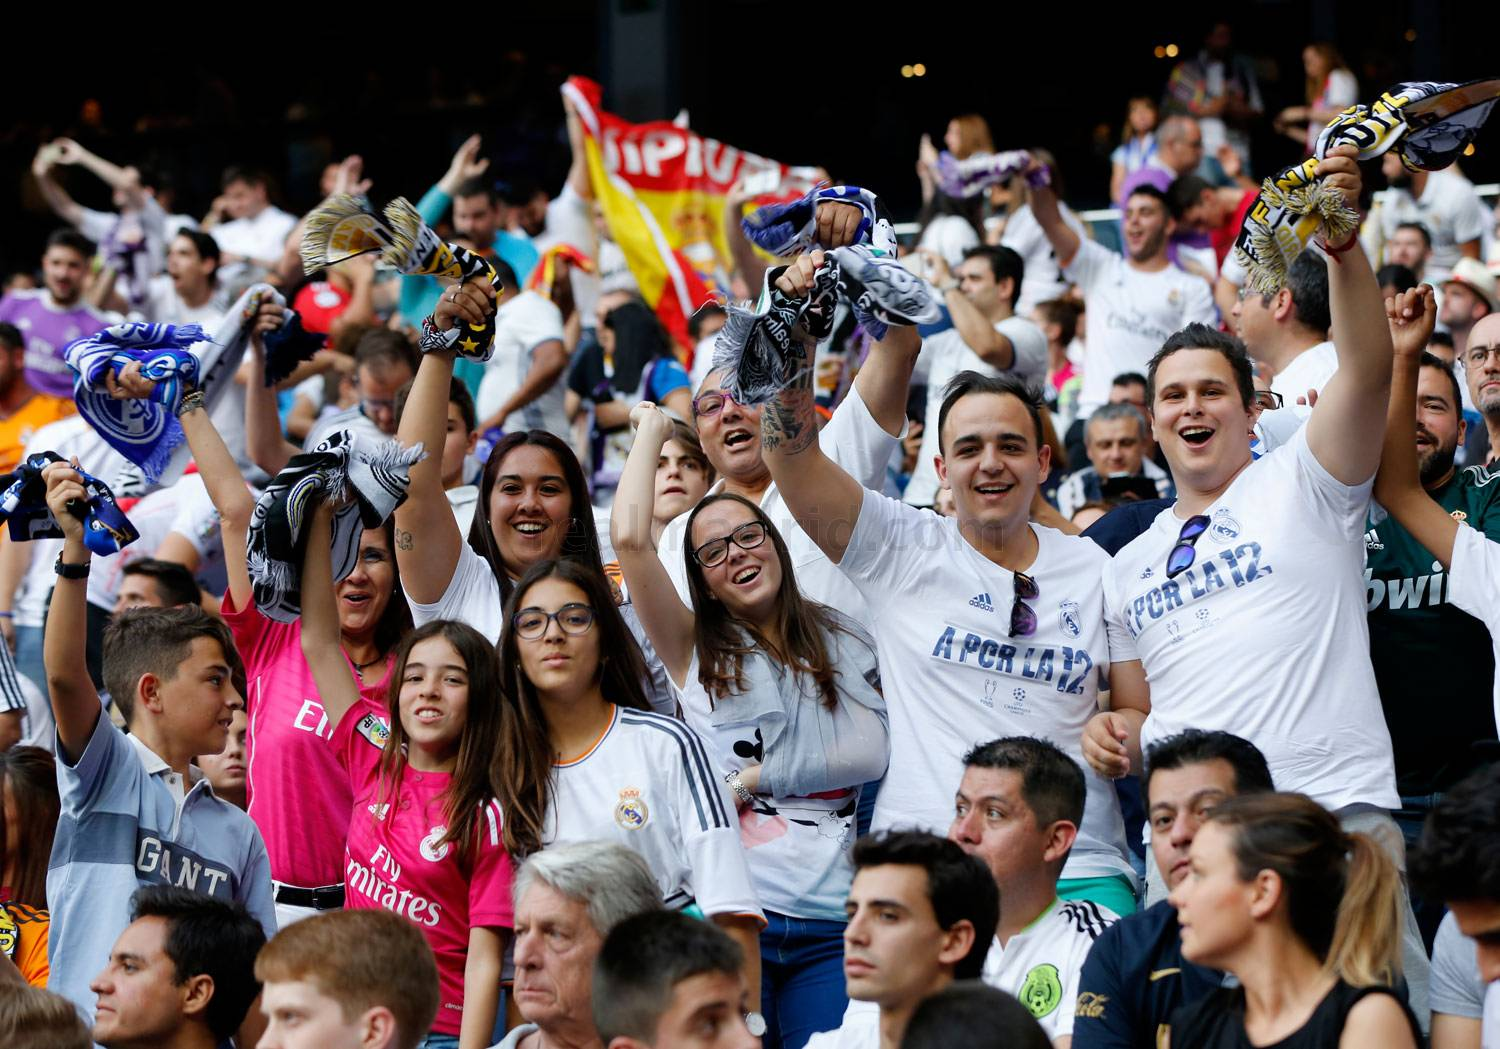 The Champions League final was also won at the Bernabéu | Photos | Real Madrid CF